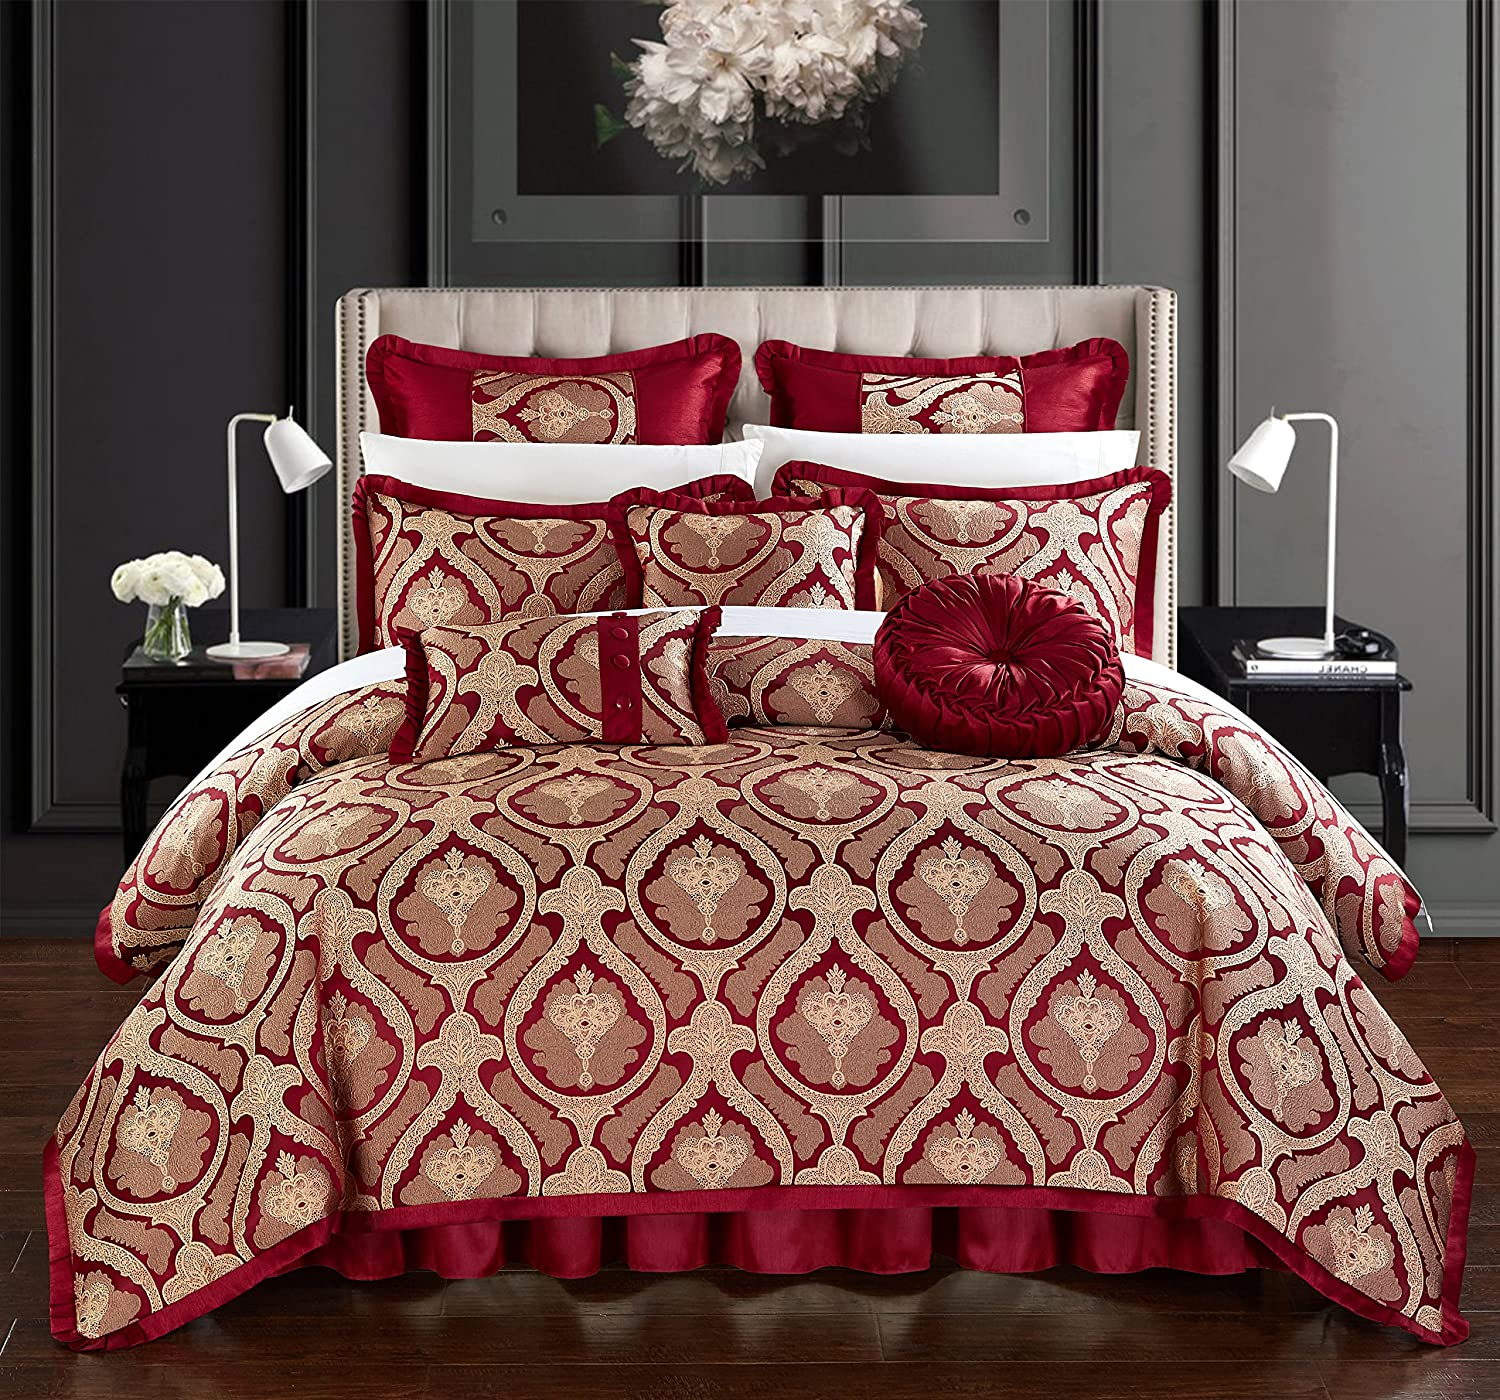 Chic Home Jodamo 9 Piece Comforter Set Jacquard Scroll Faux Silk Bedding with Pleated Flange - Bed Skirt Decorative Pillows Shams Included Queen Red